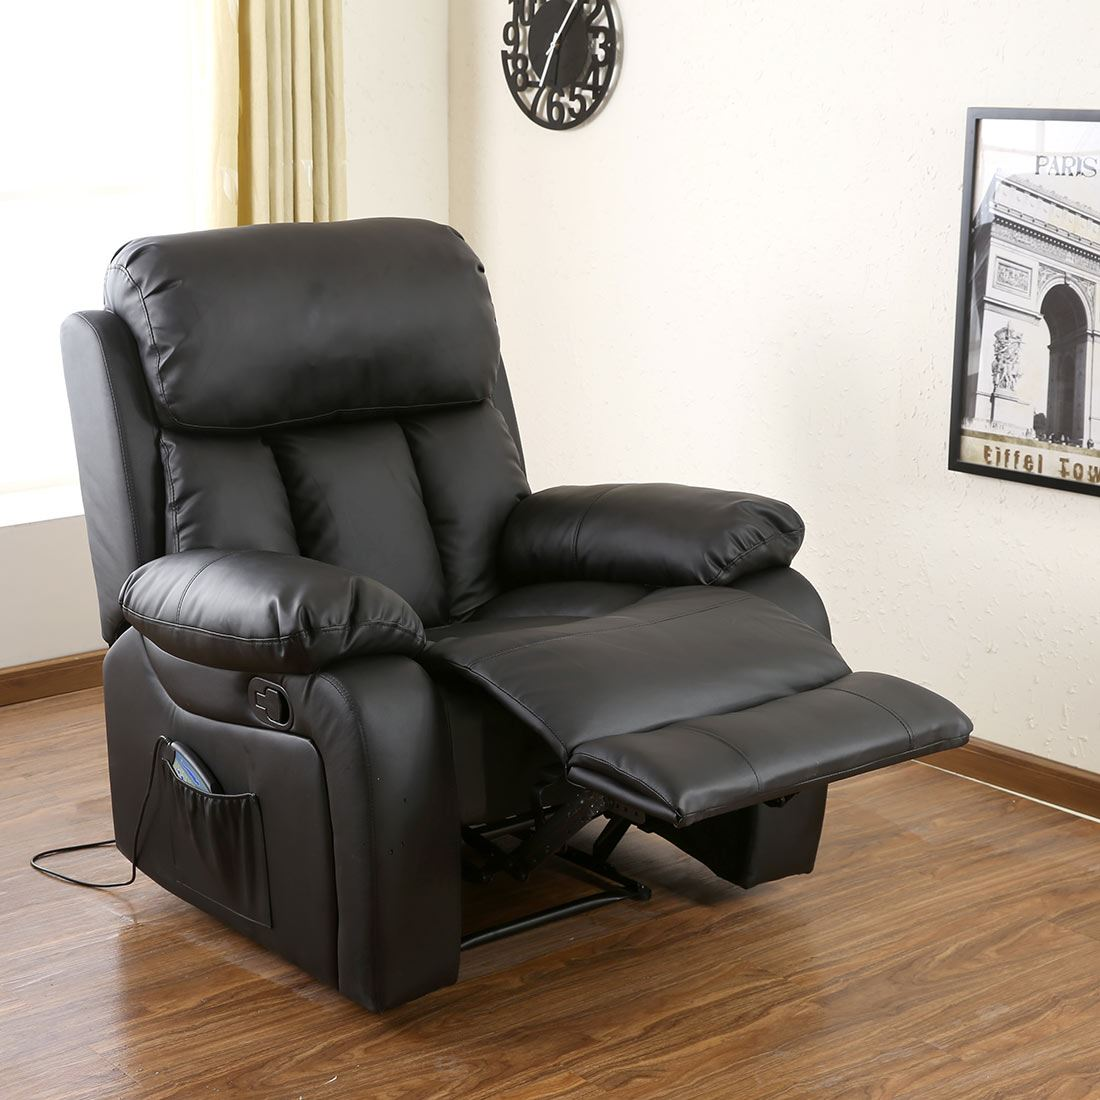 Chester Heated Leather Massage Recliner Chair Sofa Lounge Gaming Home Armchair Ebay